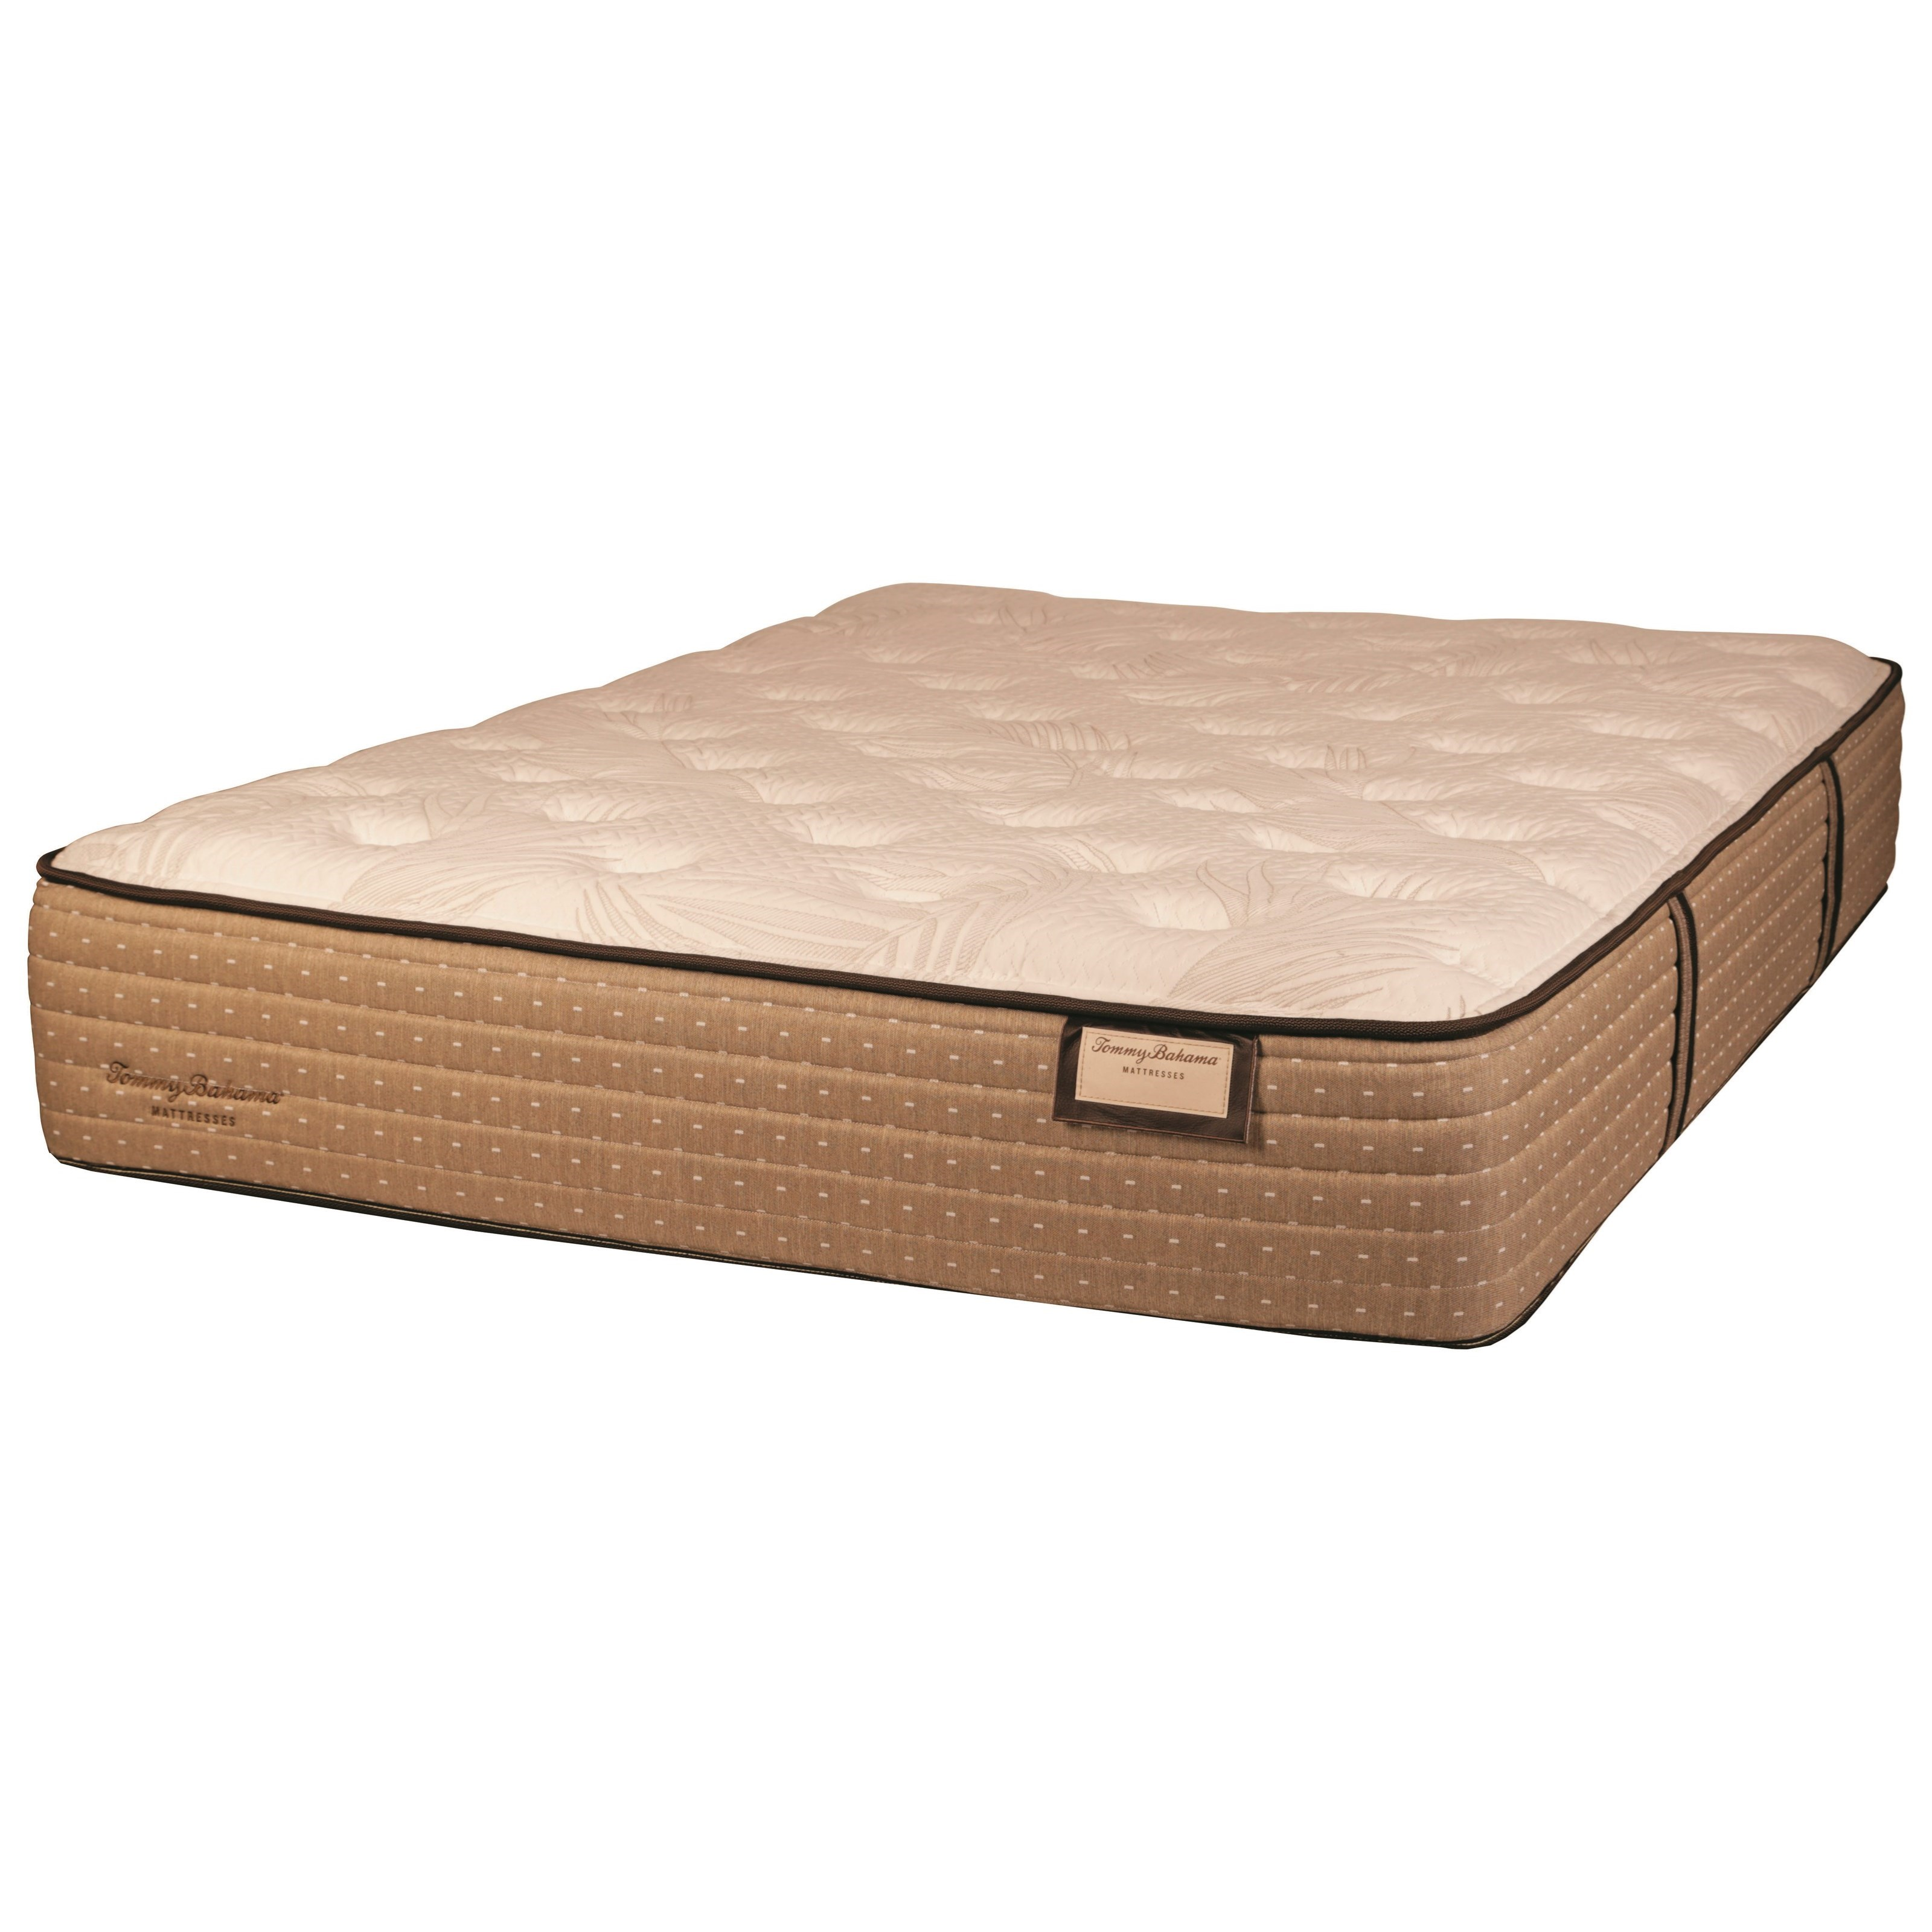 Tommy Bahama Shake the Sand Firm 6034 Twin XL Firm Luxury Mattress by Tommy Bahama Mattress at Baer's Furniture